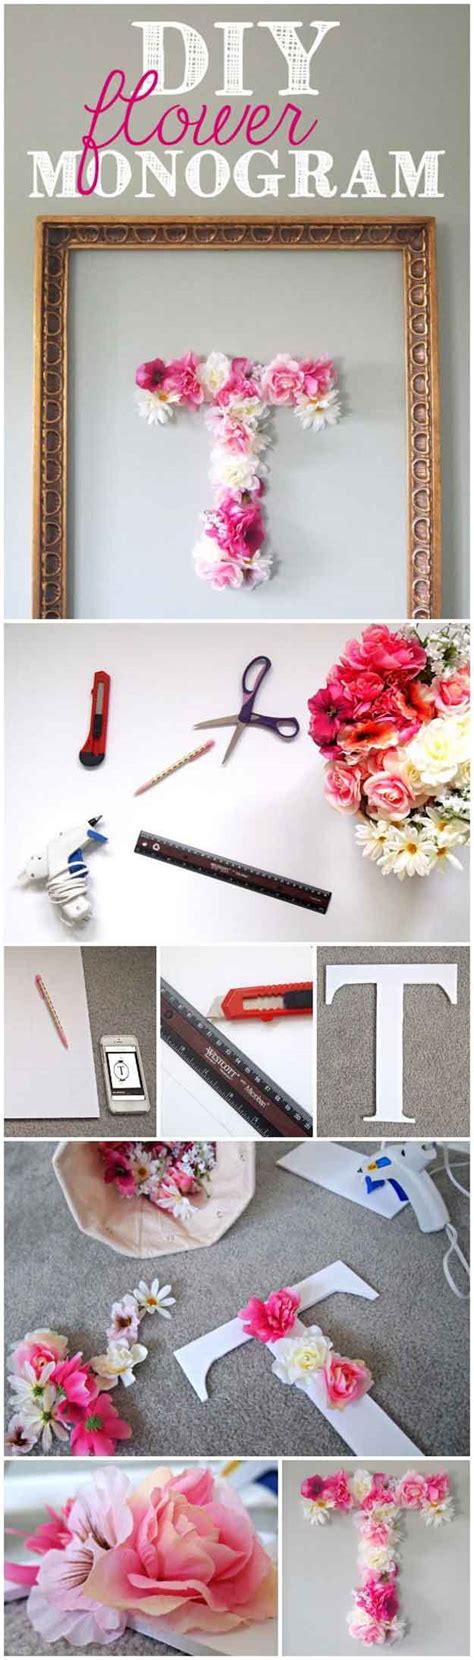 Easy Diy Bedroom Decor | diy projects for teens bedroom diy ready